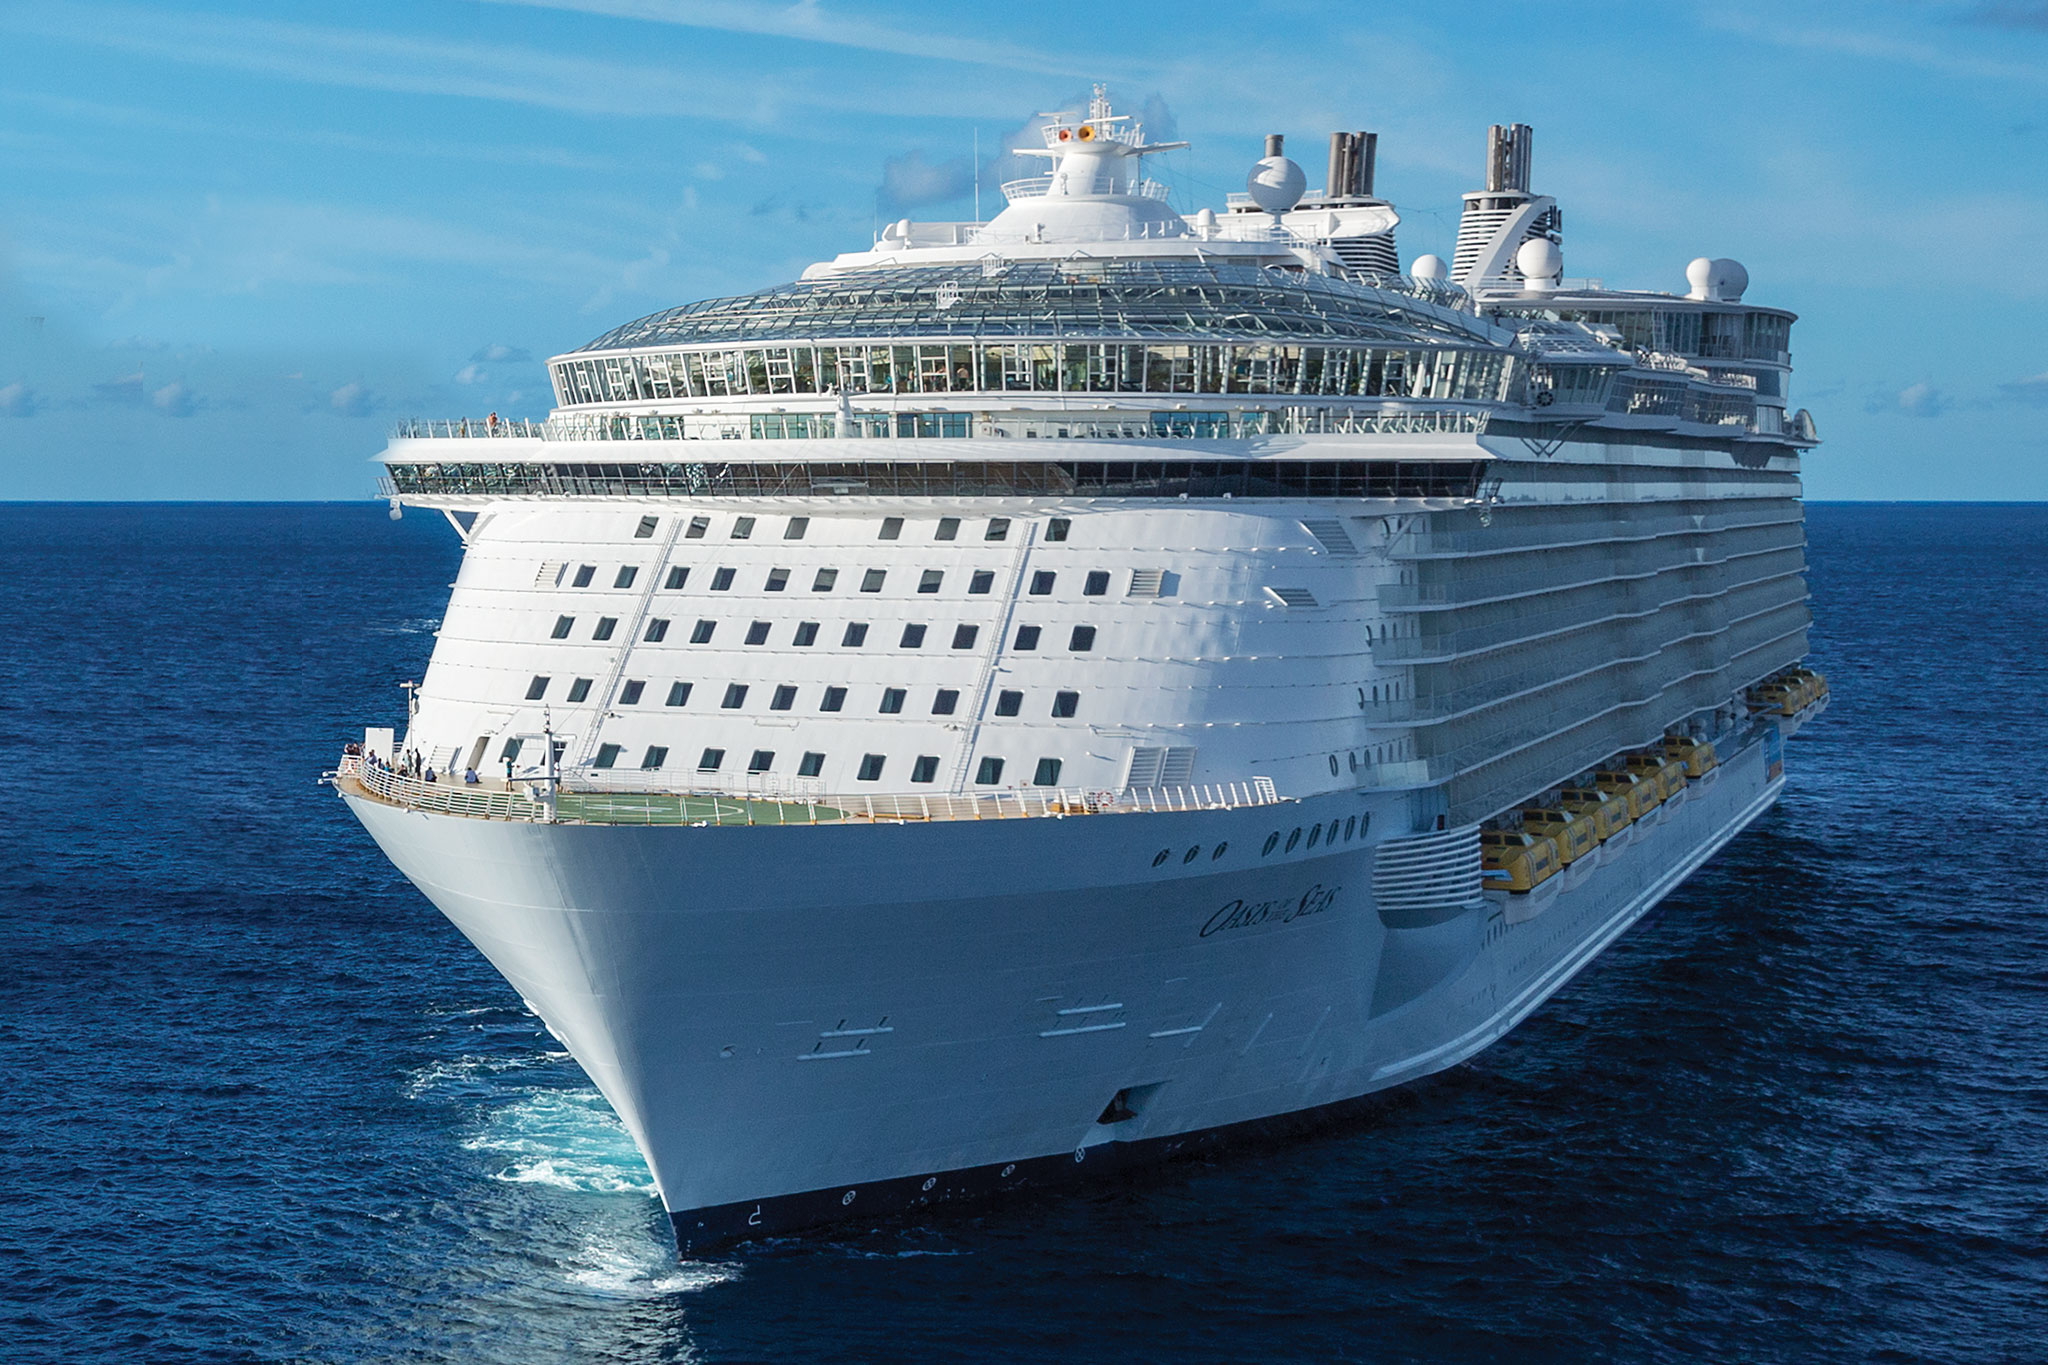 Luxury Cruise Packages Promotions - Cruise ship promotions